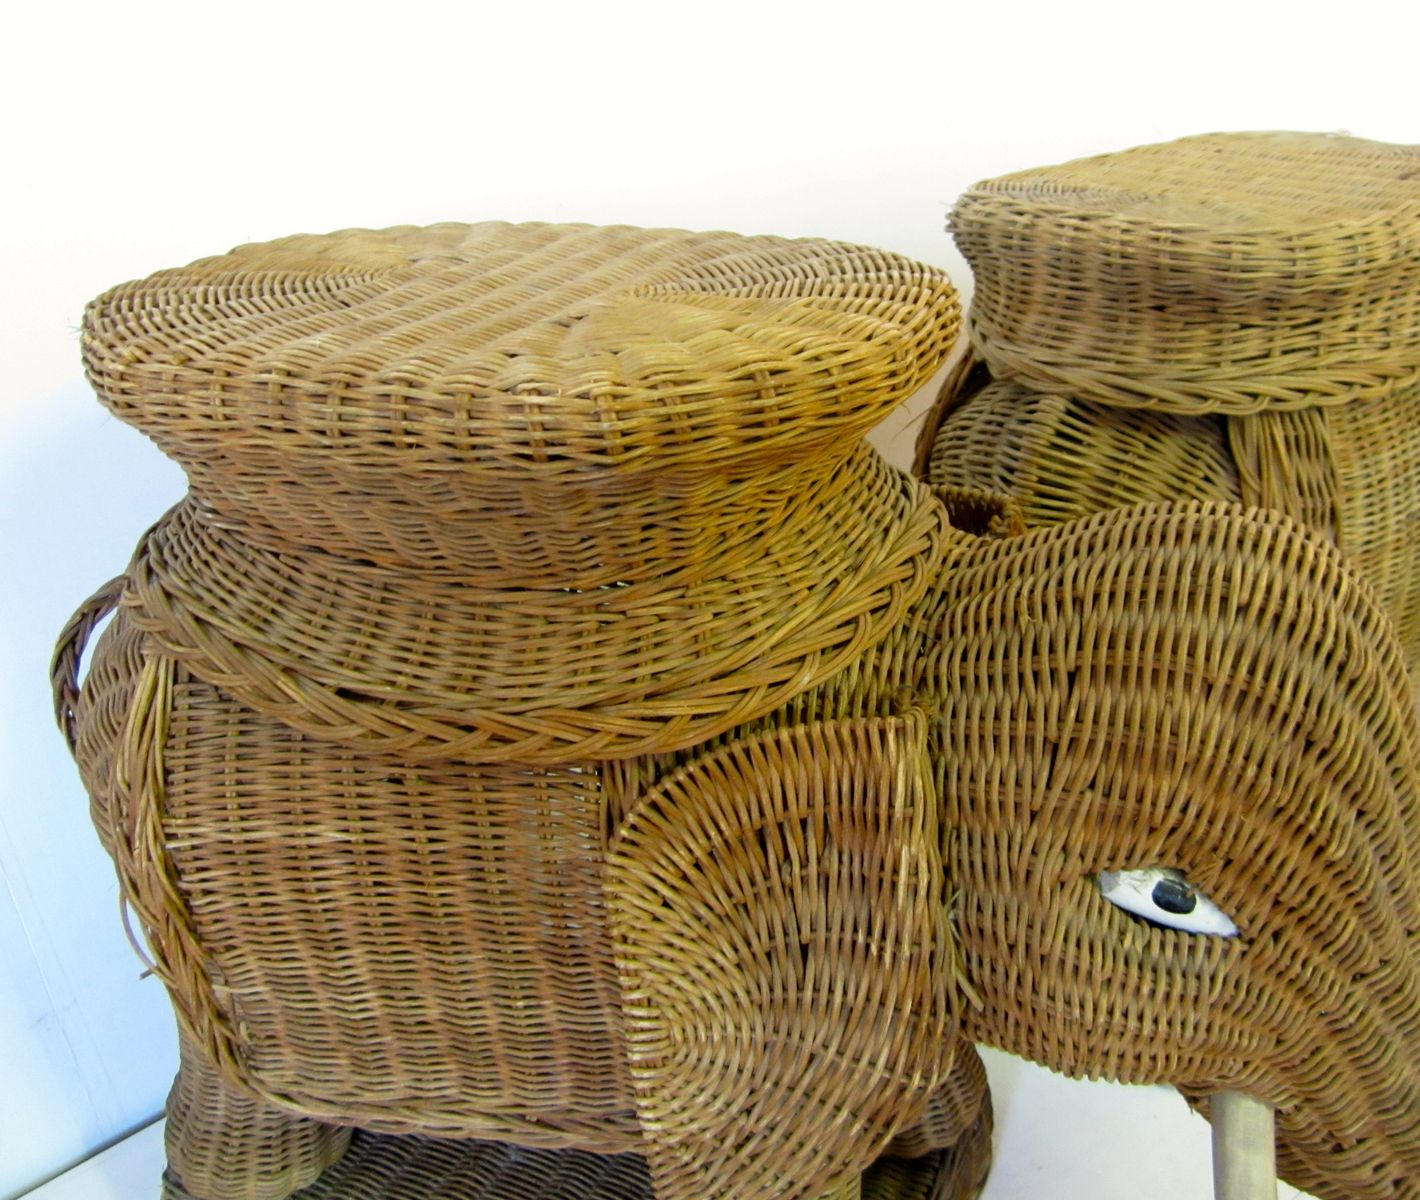 Elephant hamper wicker seagrass ash storage collection u0026 textured cotton liners popup - Wicker elephant hamper ...